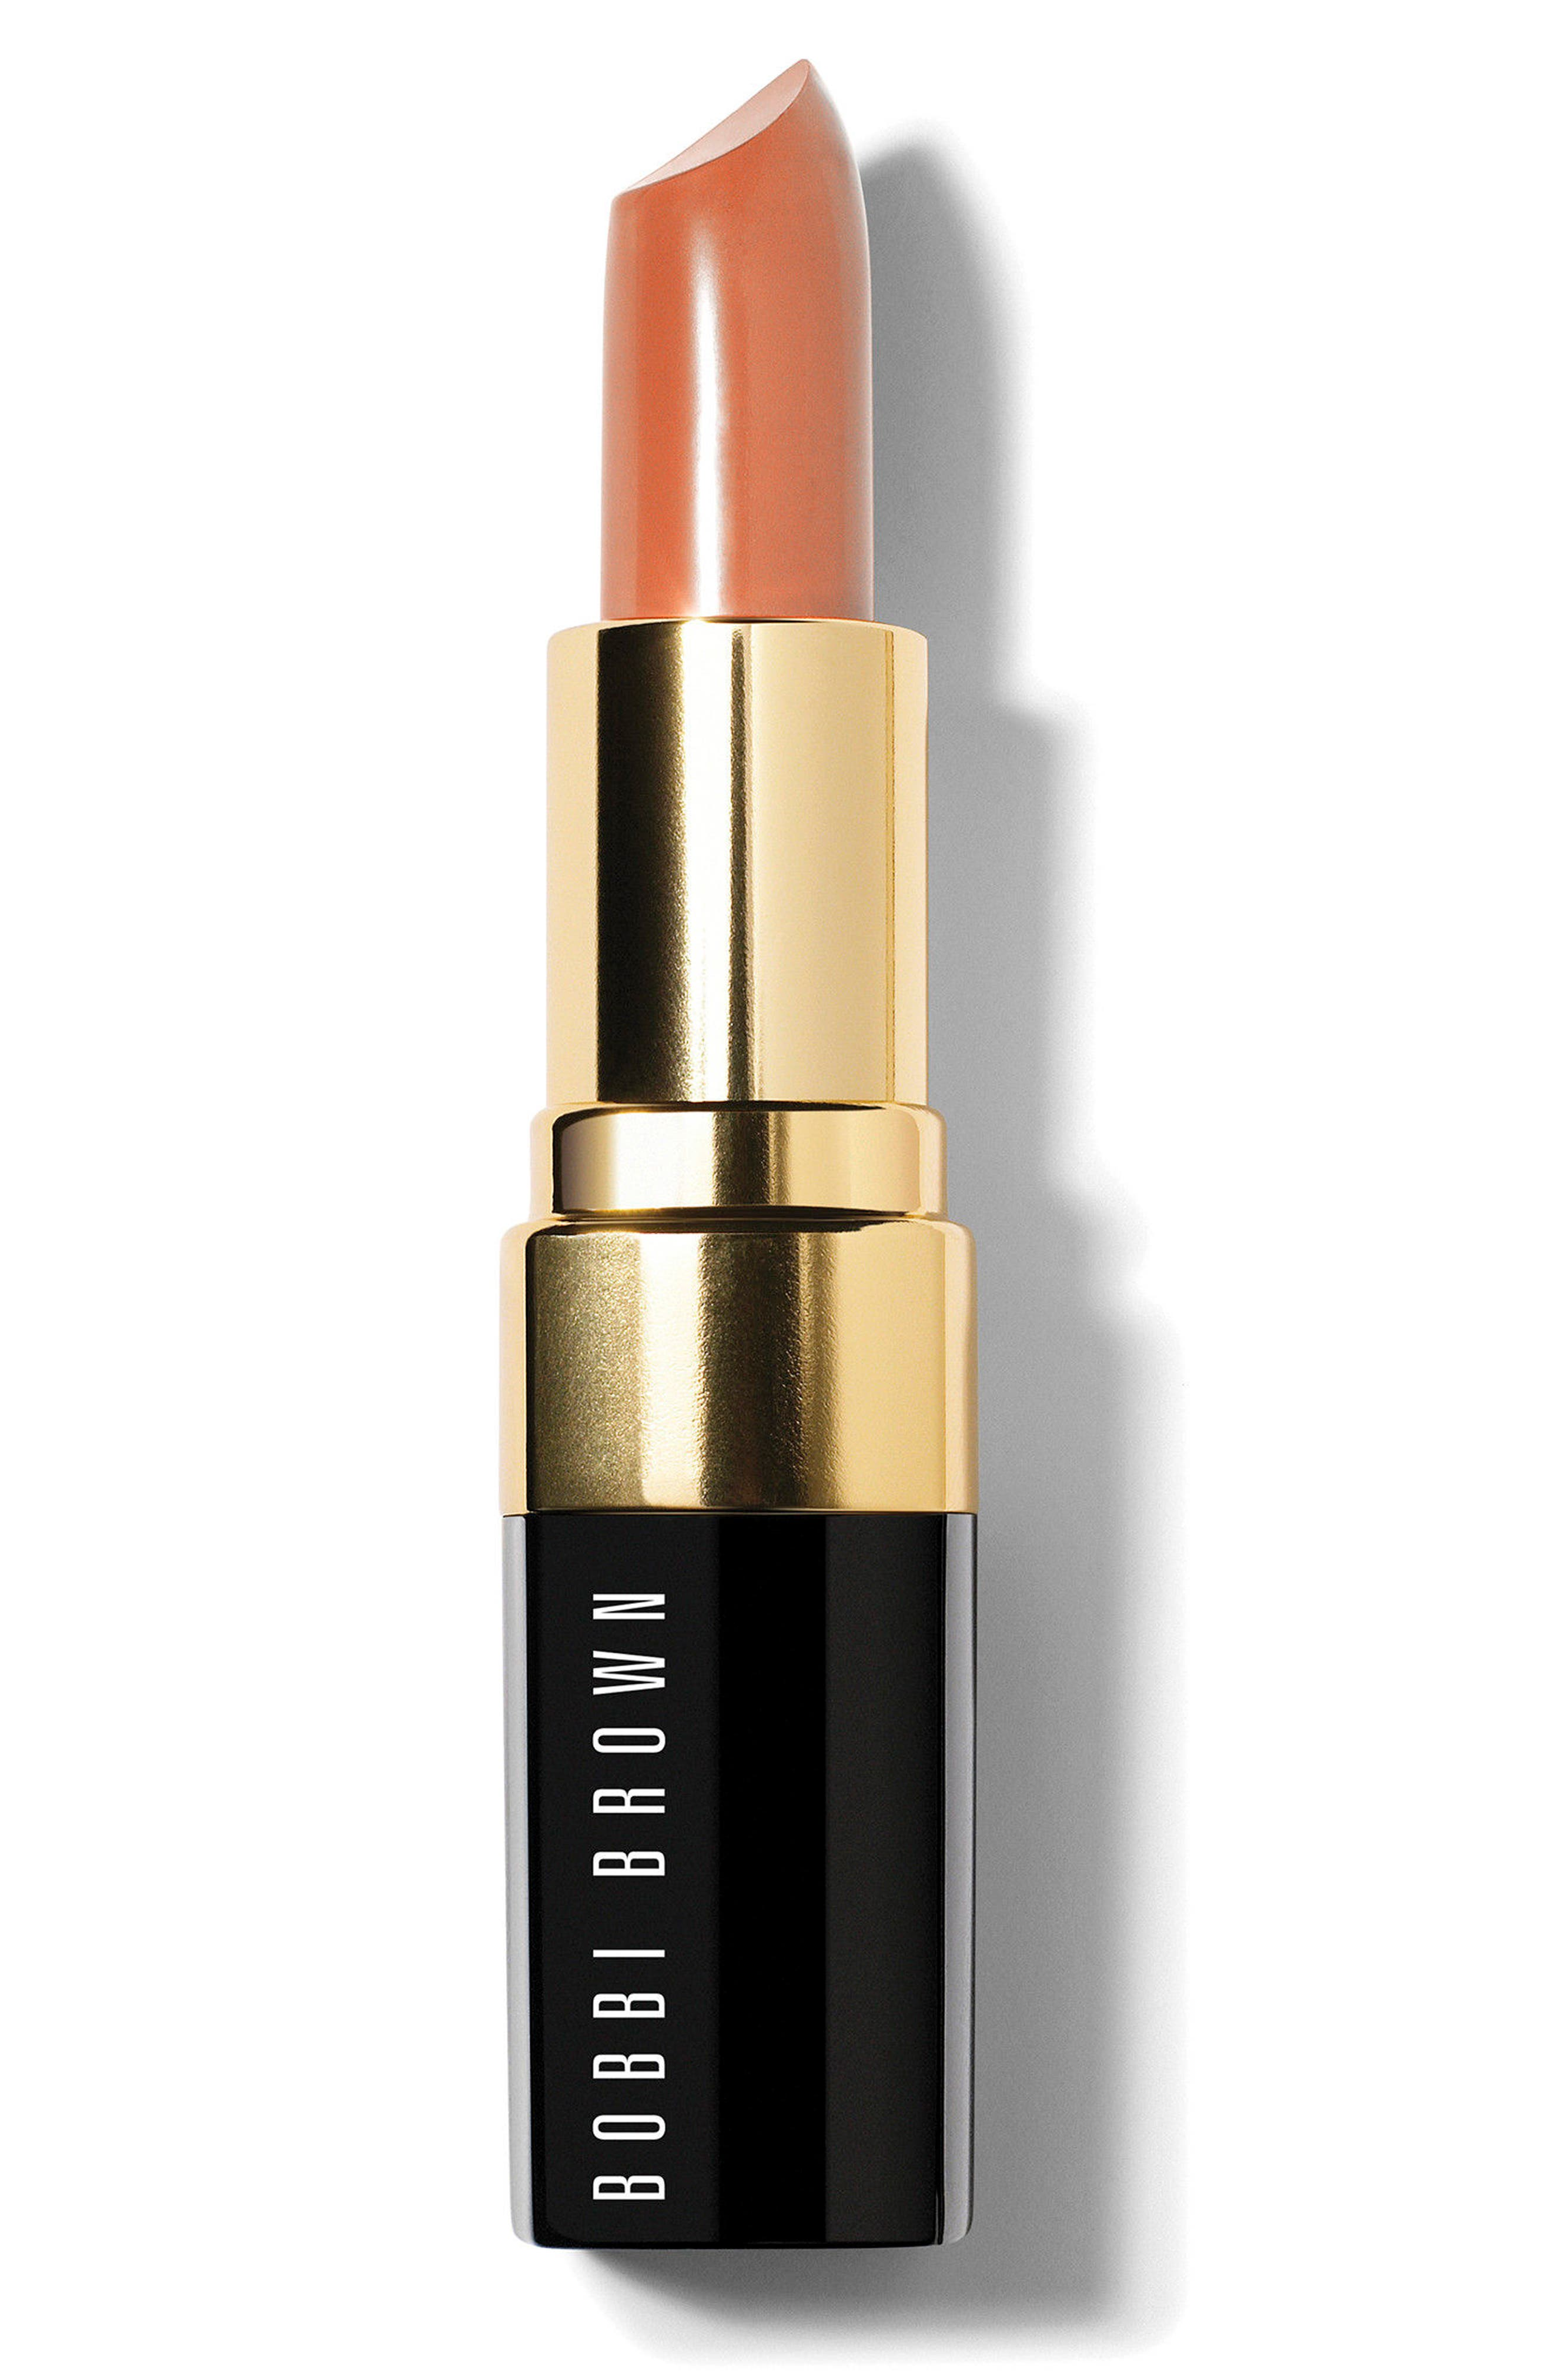 What it is: A bestseller that started it all-an iconic, creamy, semi-matte lipstick that was the first formula to launch and when it did, sold out instantly. Why it\\\'s different: The secret to its success is comfortable, full-coverage color that instantly gives lips a polished look. The non-drying lipstick offers full-color coverage and comfortable, long-lasting wear. How to use: Apply straight from the tube on clean, bare lips. Follow the natural